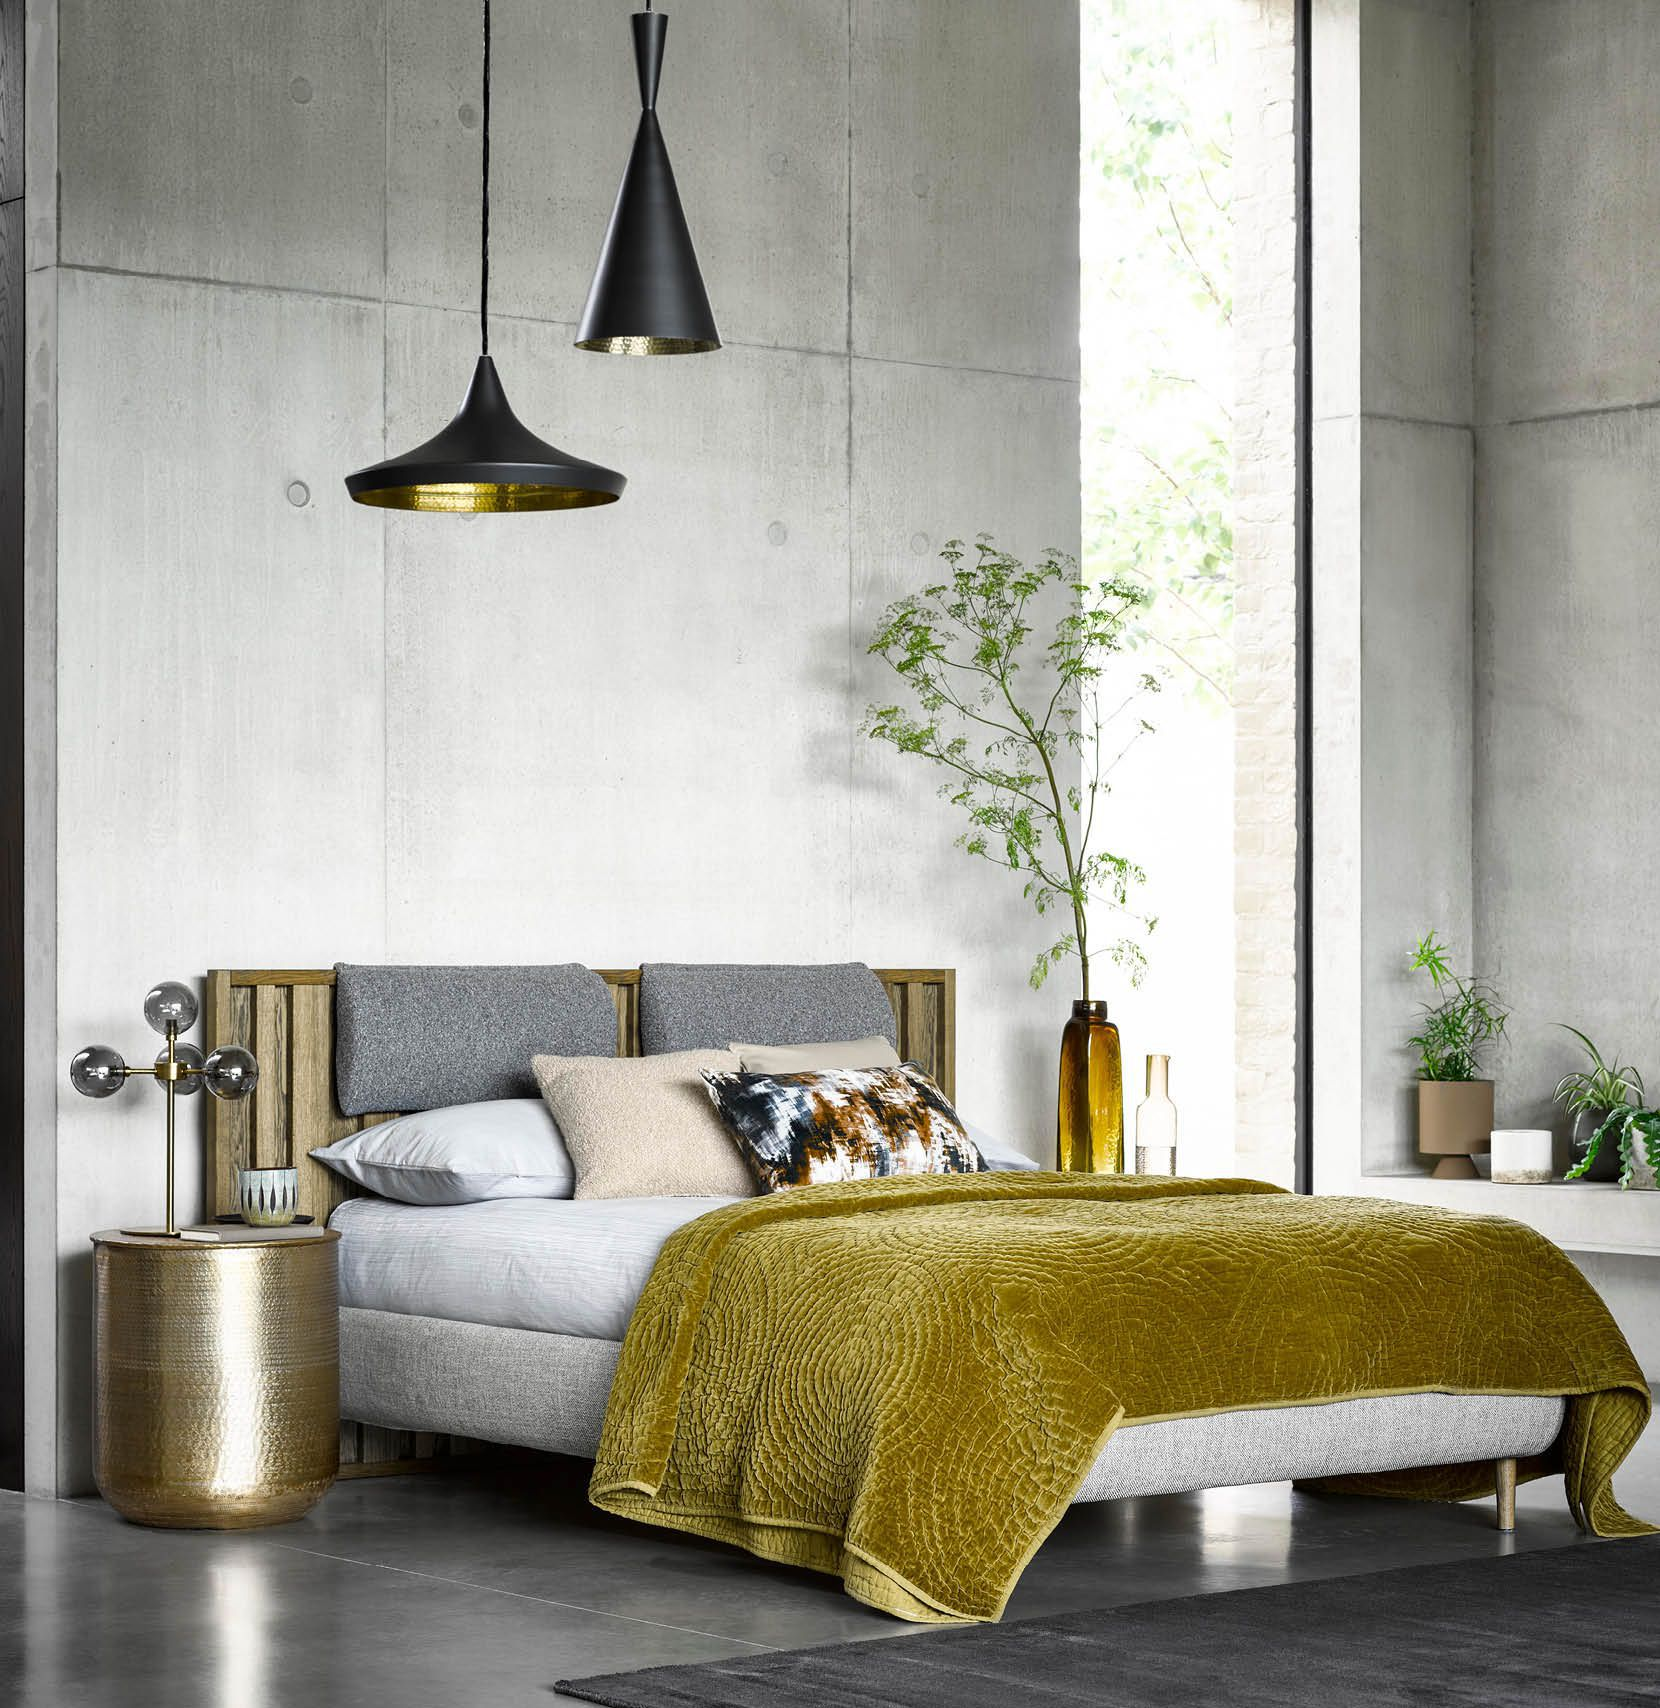 Add a bit of lair - Stunning contemporary bedroom furnished with Tom Dixon lighting beat pendents, Verona headboard cushions attached to Florence fabric and wooden bed.